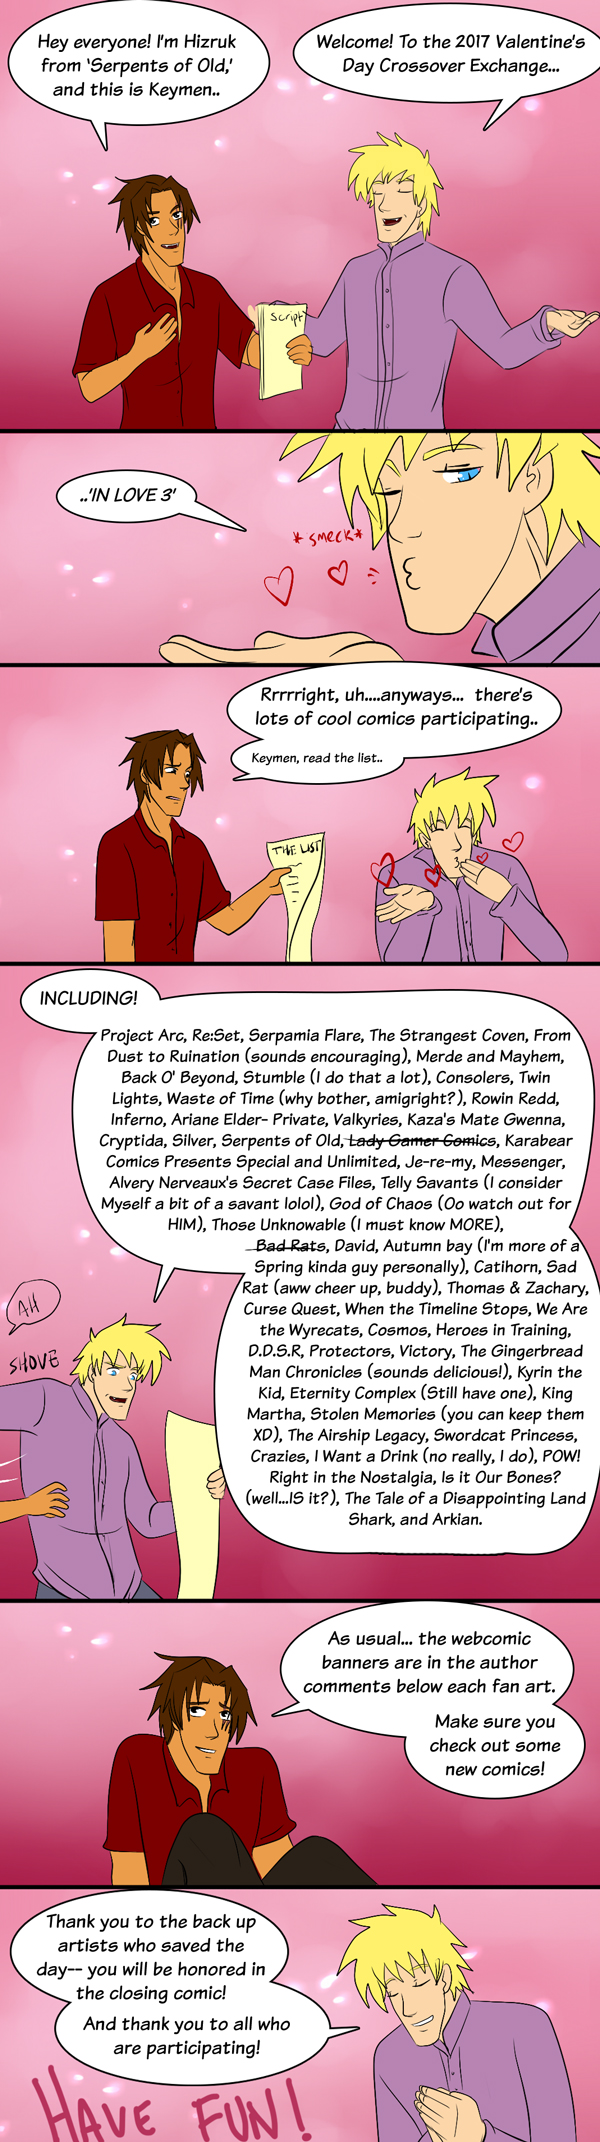 2017 Crossover Exchange, IN LOVE 3: Intro Comic!